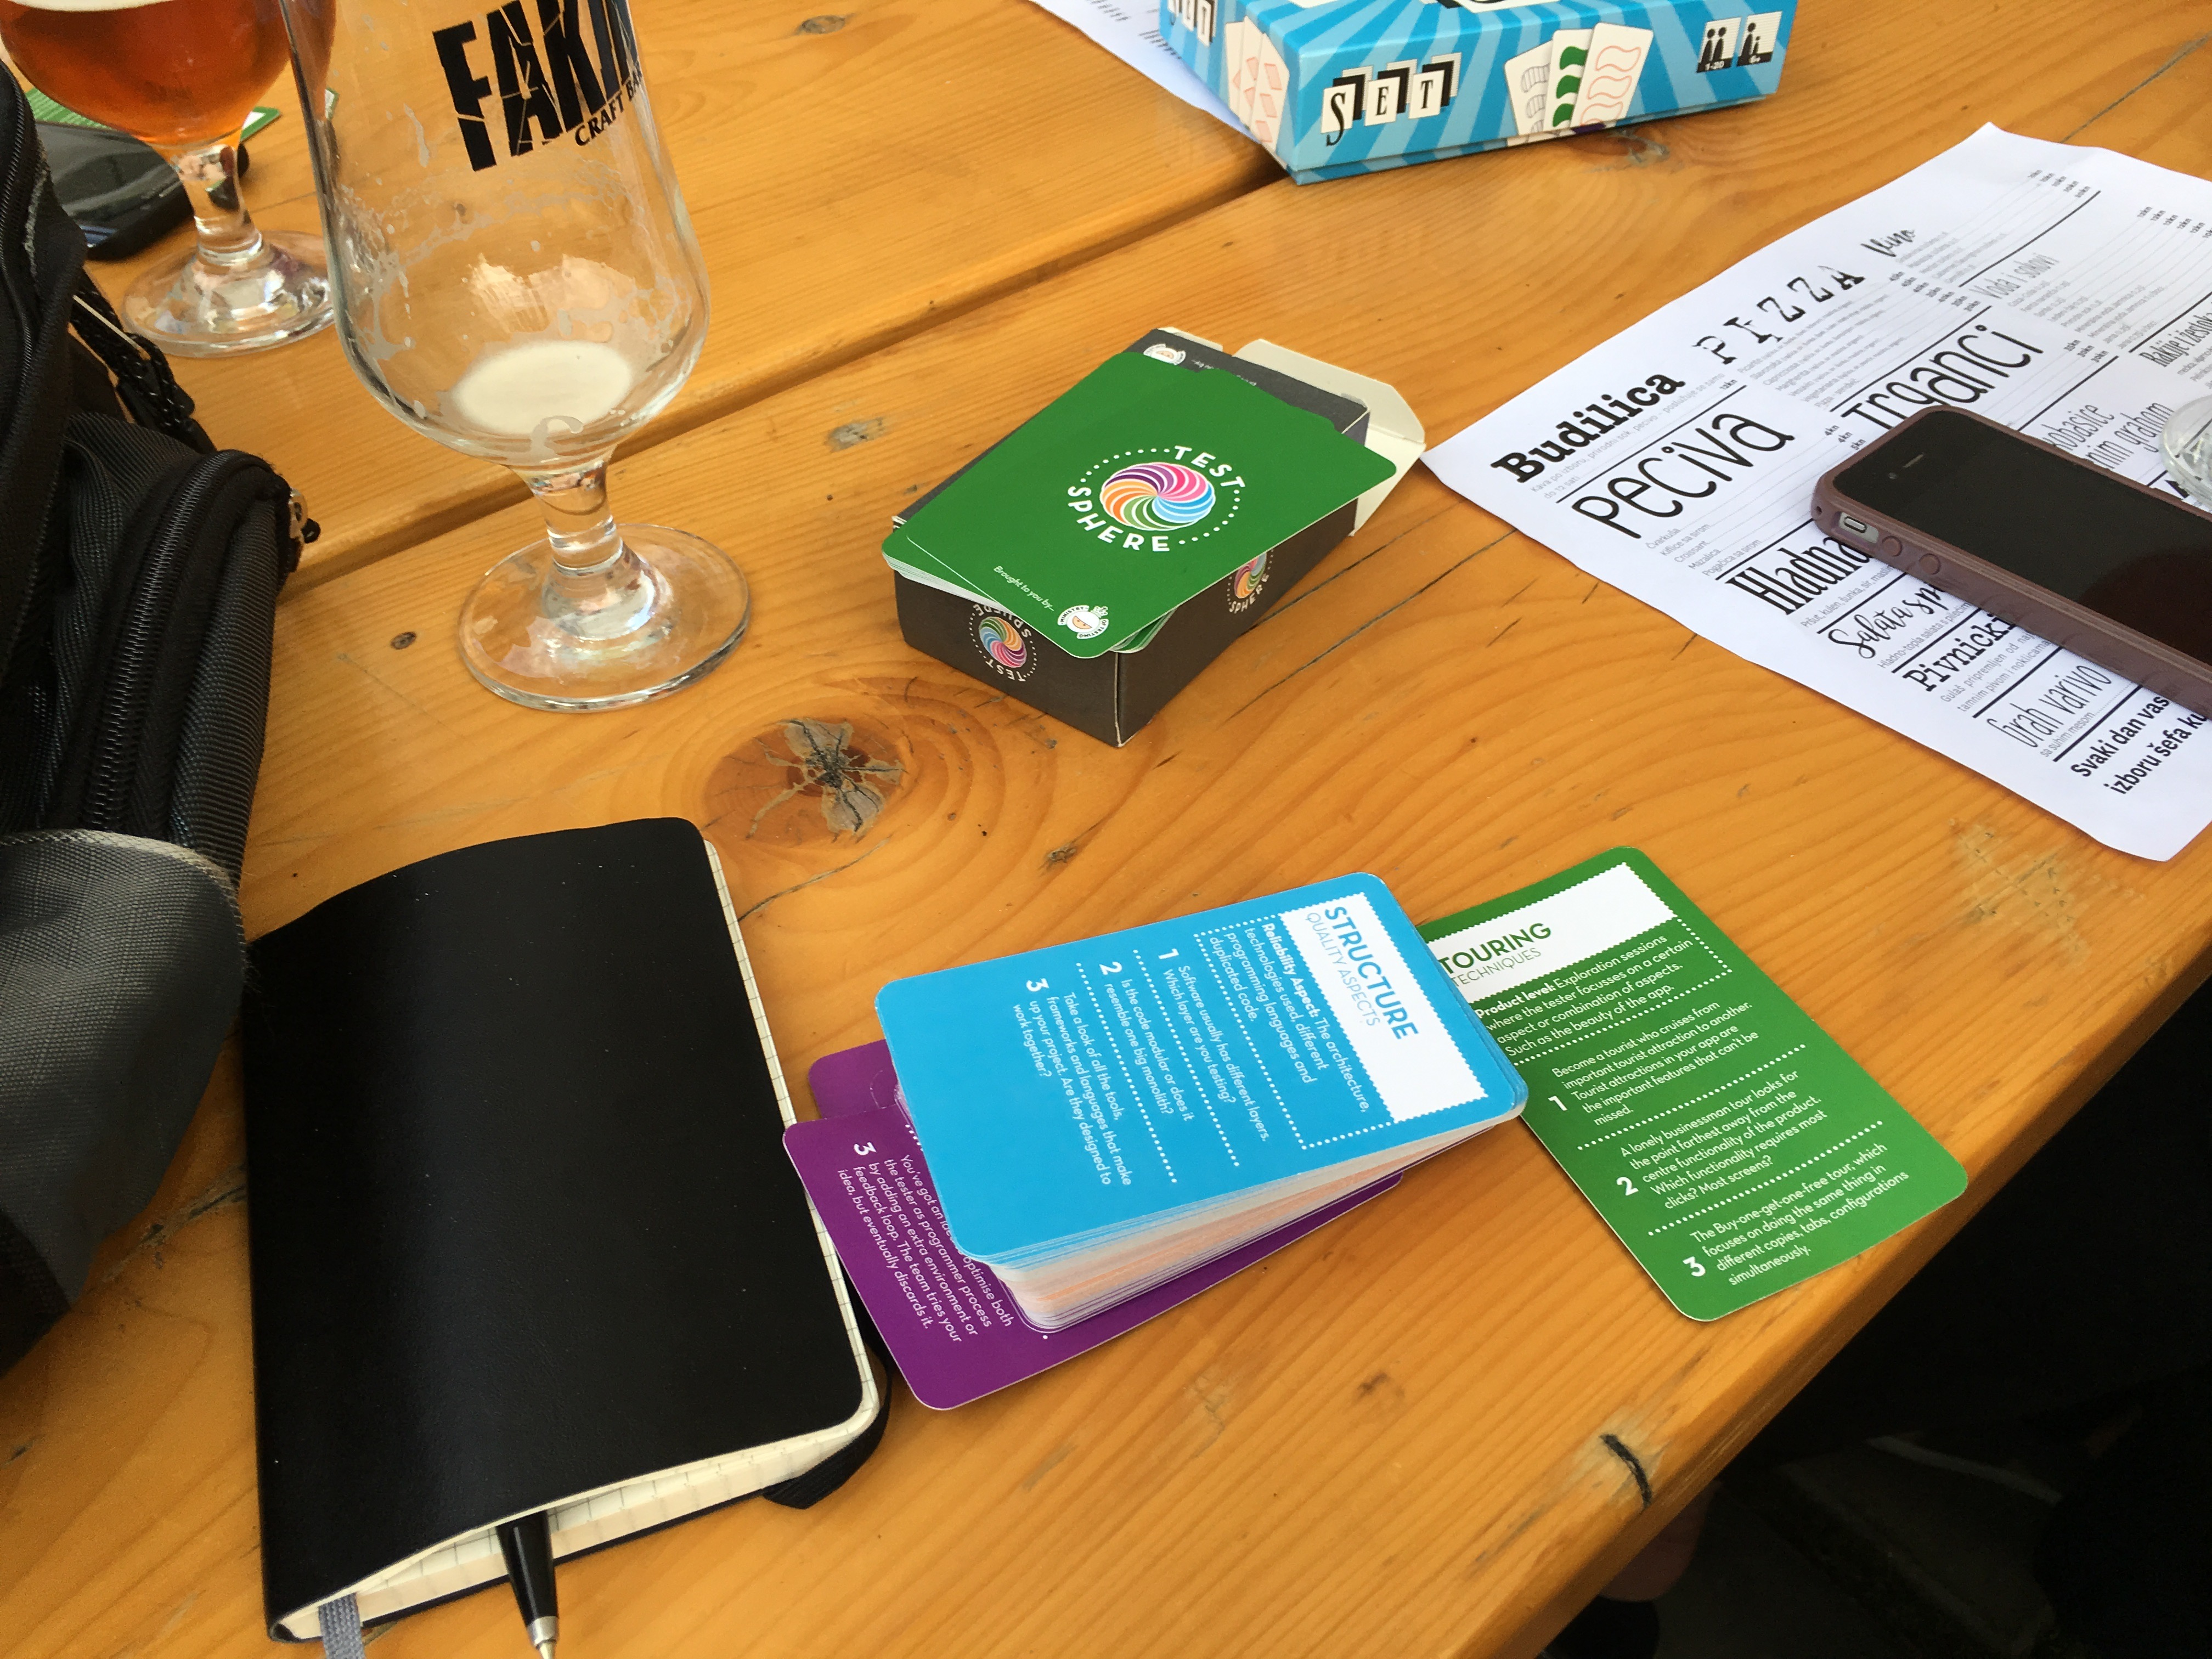 What I learned at Testival #30: learning by playing card games